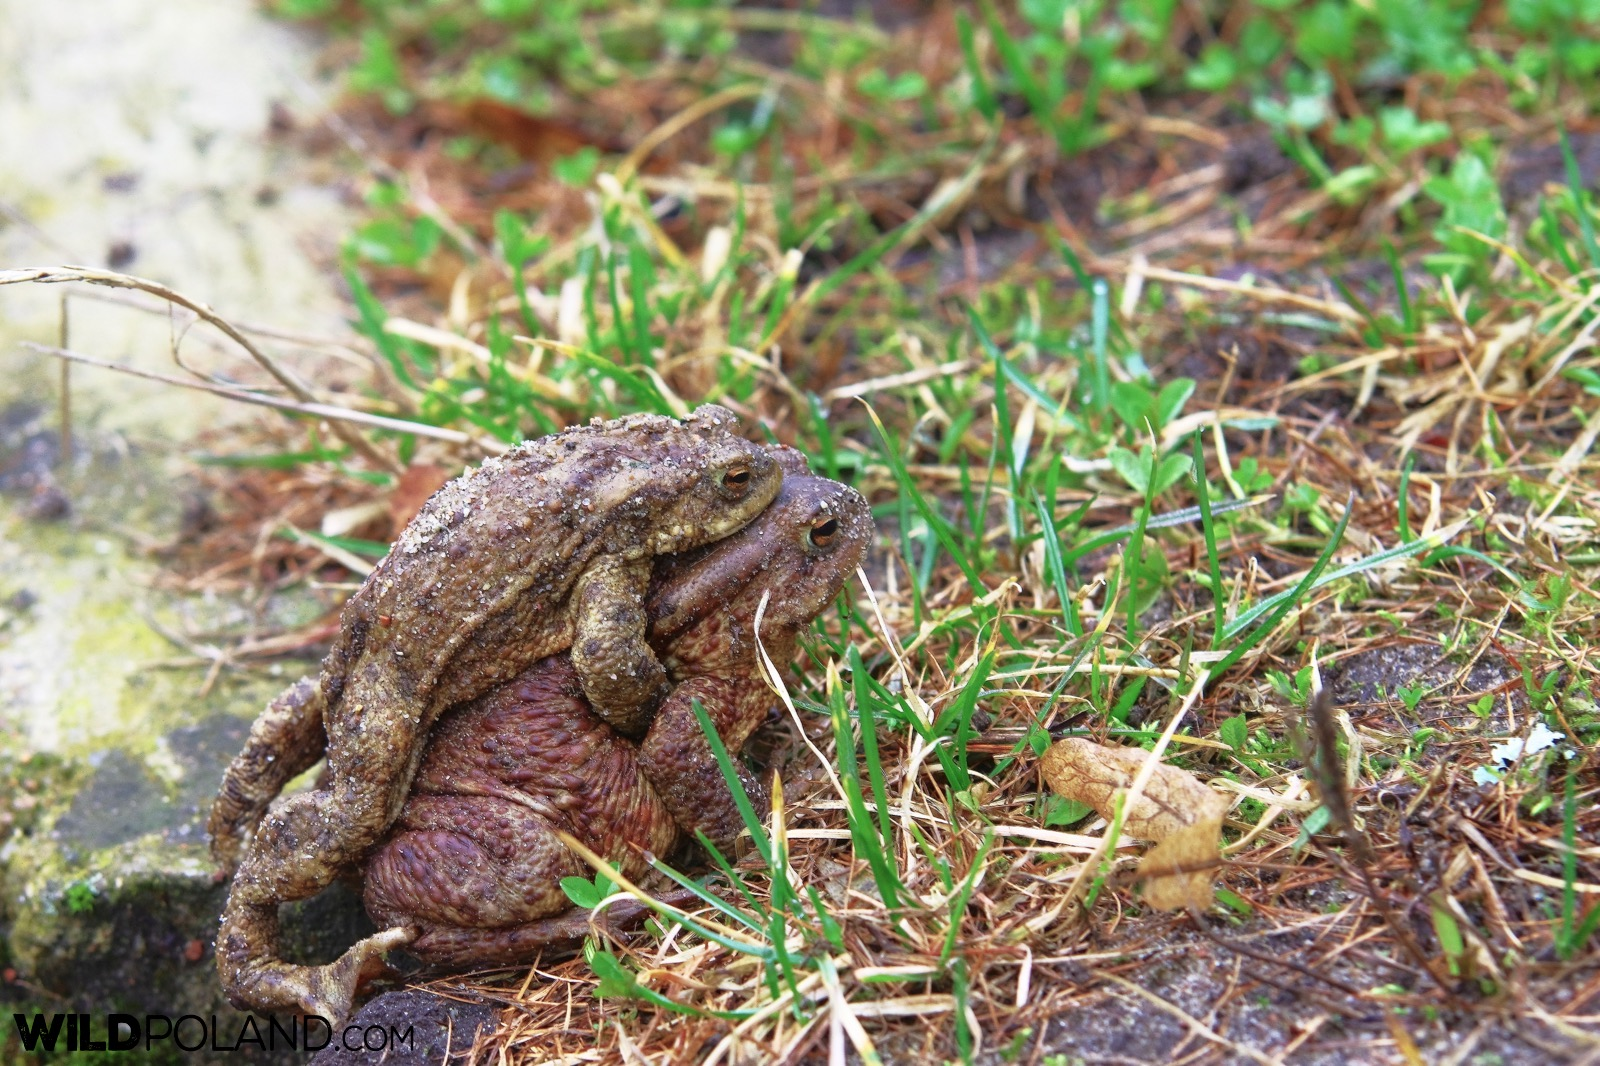 Common toads at springtime, Białowieża Forest, photo by Andrzej Petryna